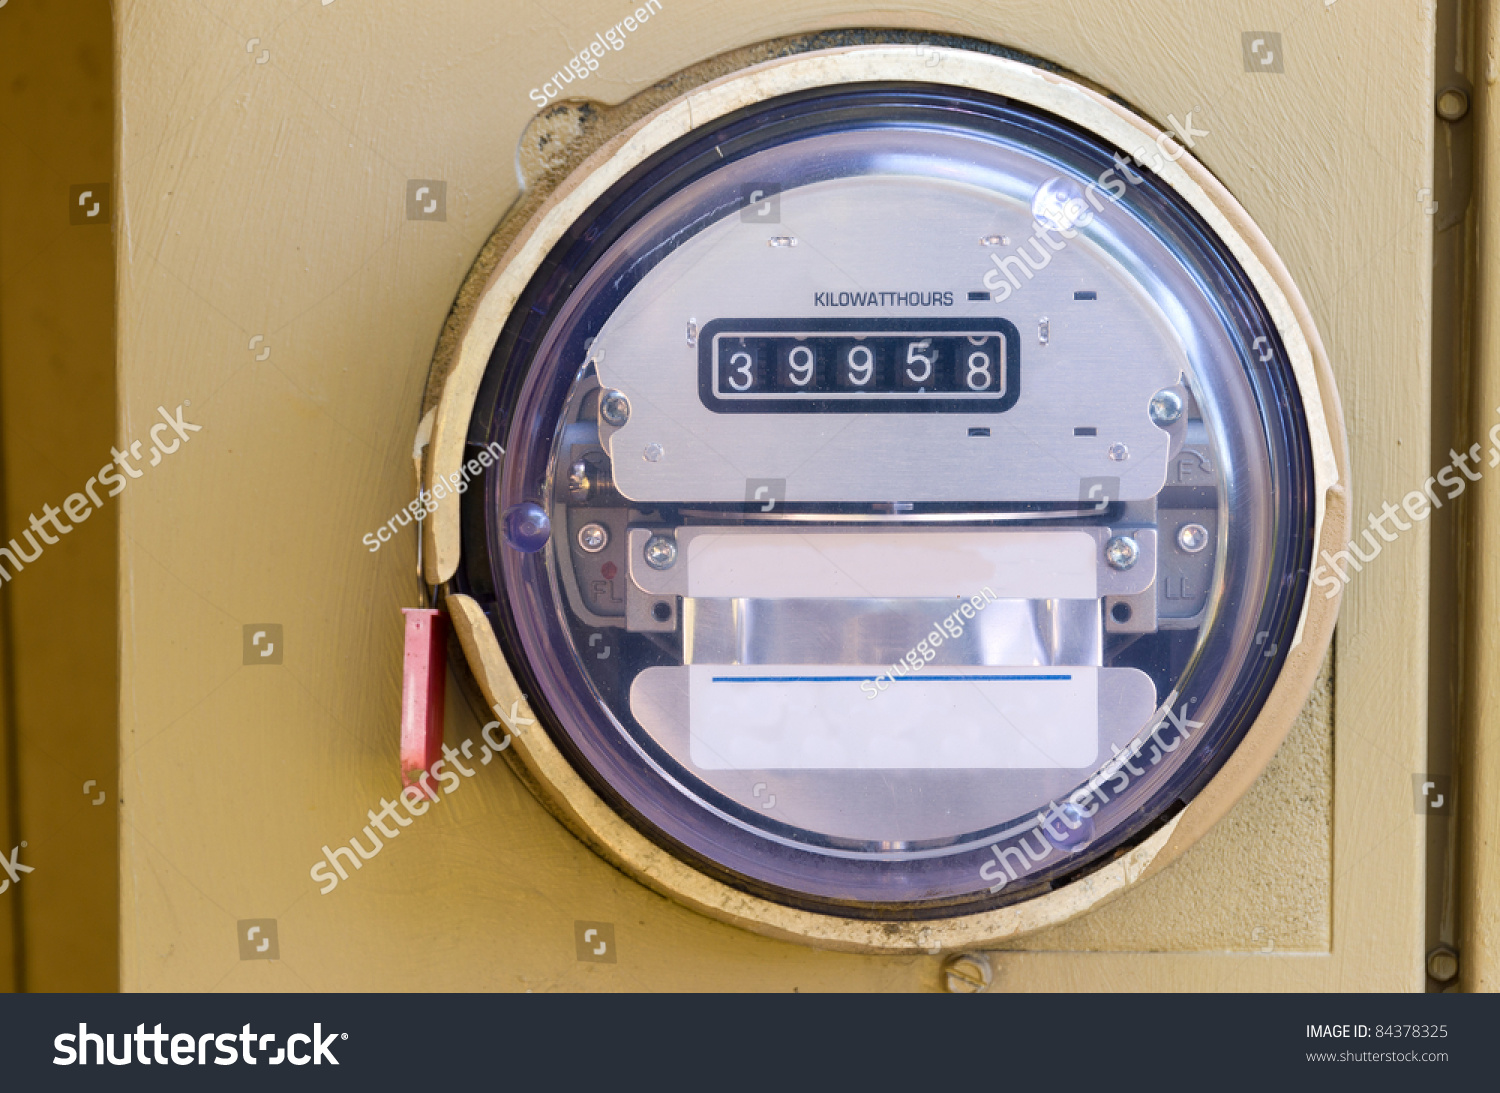 Electronic Meter Reading Device : Electric power meter reading energy usage stock photo